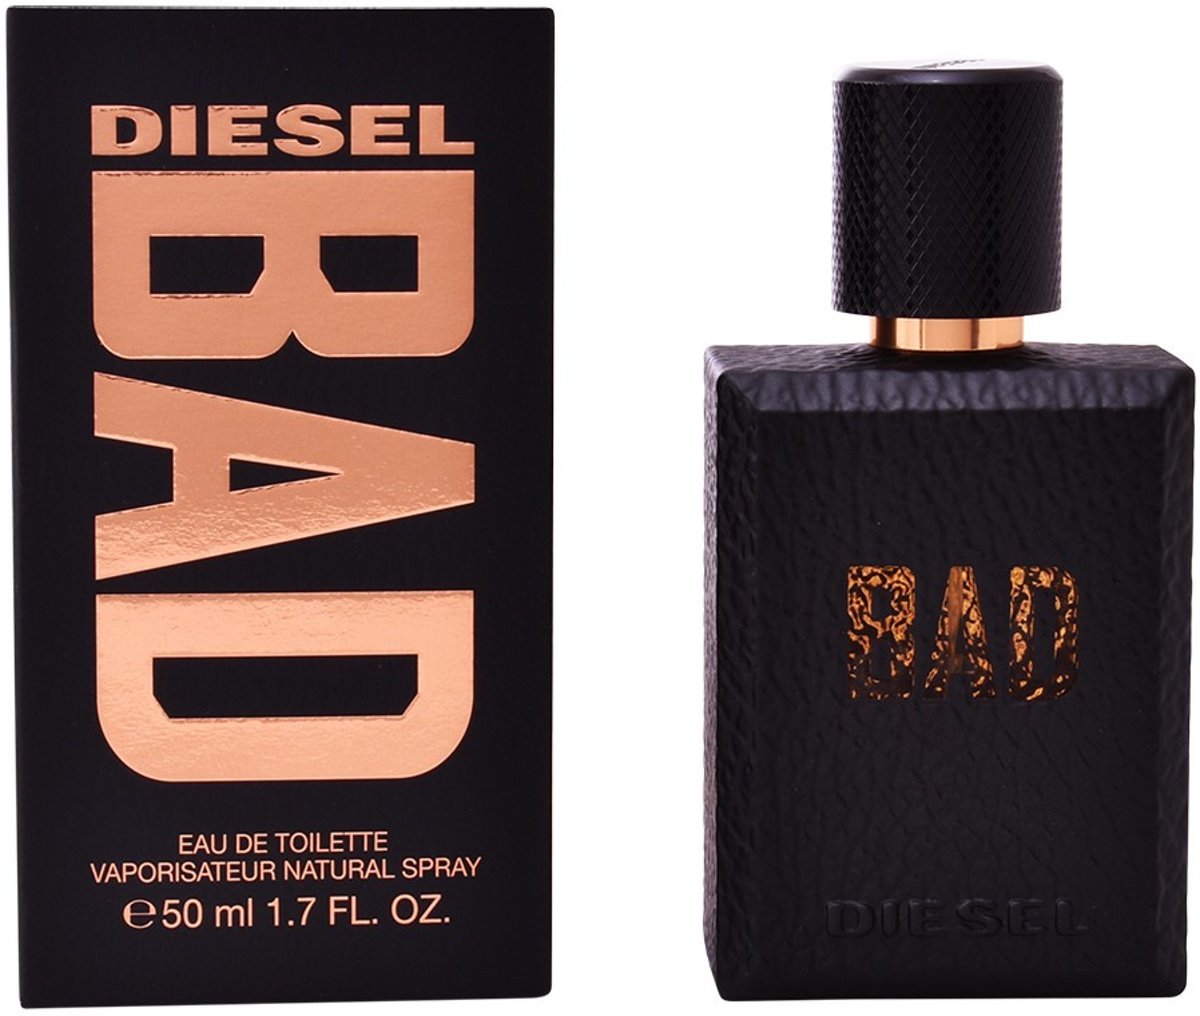 MULTI BUNDEL 2 stuks BAD Eau de Toilette Spray 50 ml